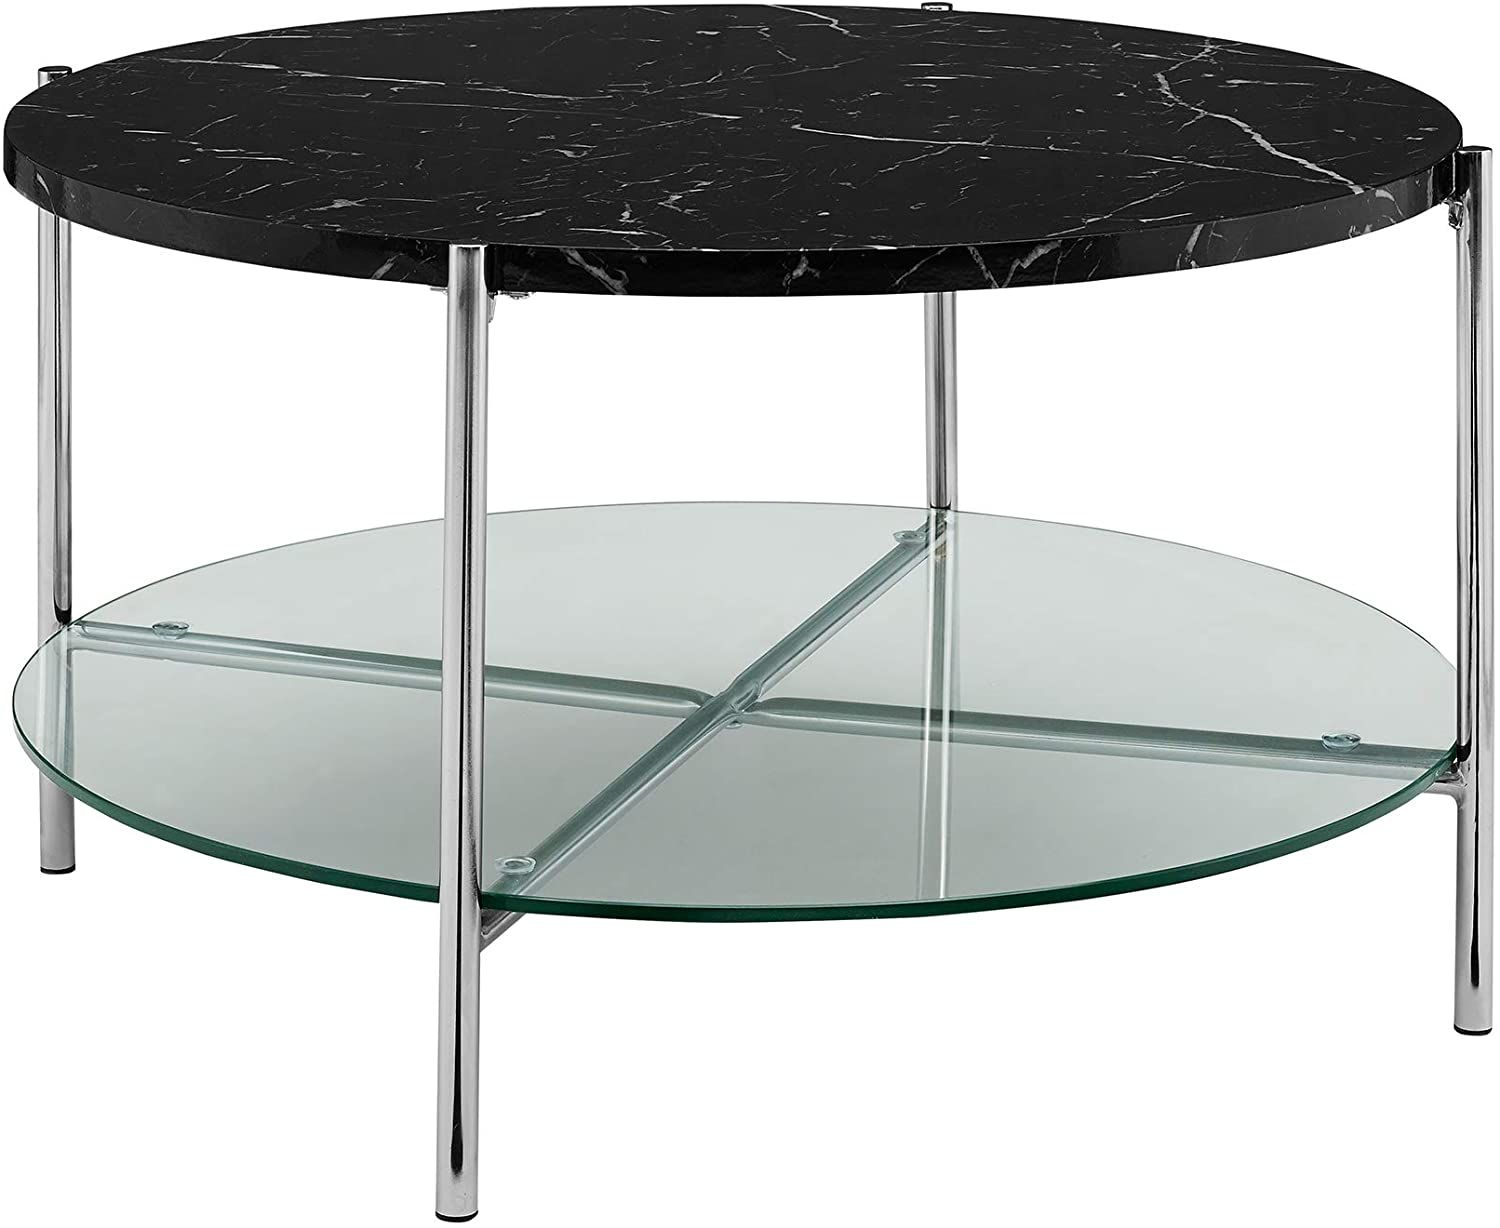 Modern Metal Round Coffee Accent Table Living Room 32 Inch Black Marble Living Room Accent Tables Coffee Table Faux Marble Coffee Table [ 1228 x 1500 Pixel ]